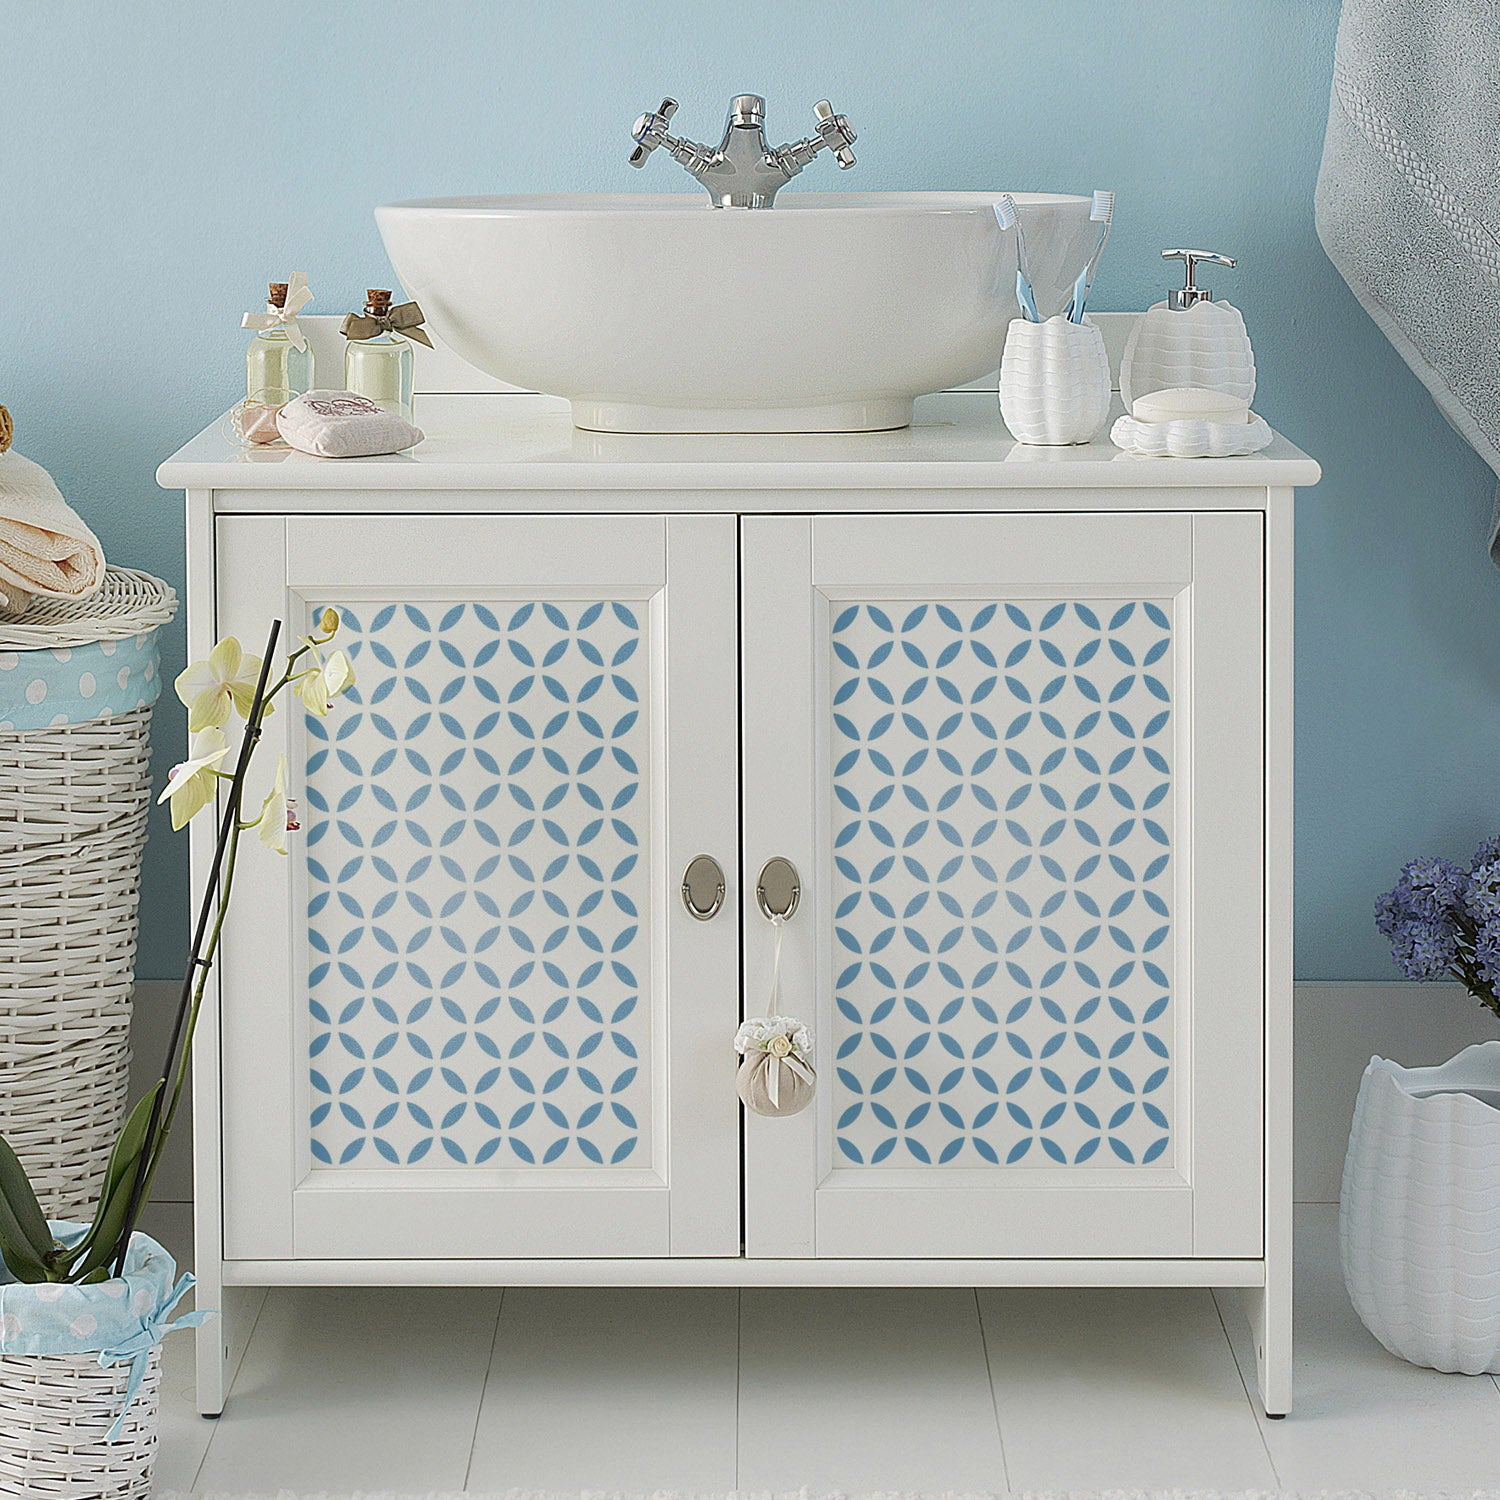 CraftStar Moroccan Lattice Stencil on wooden cabinet